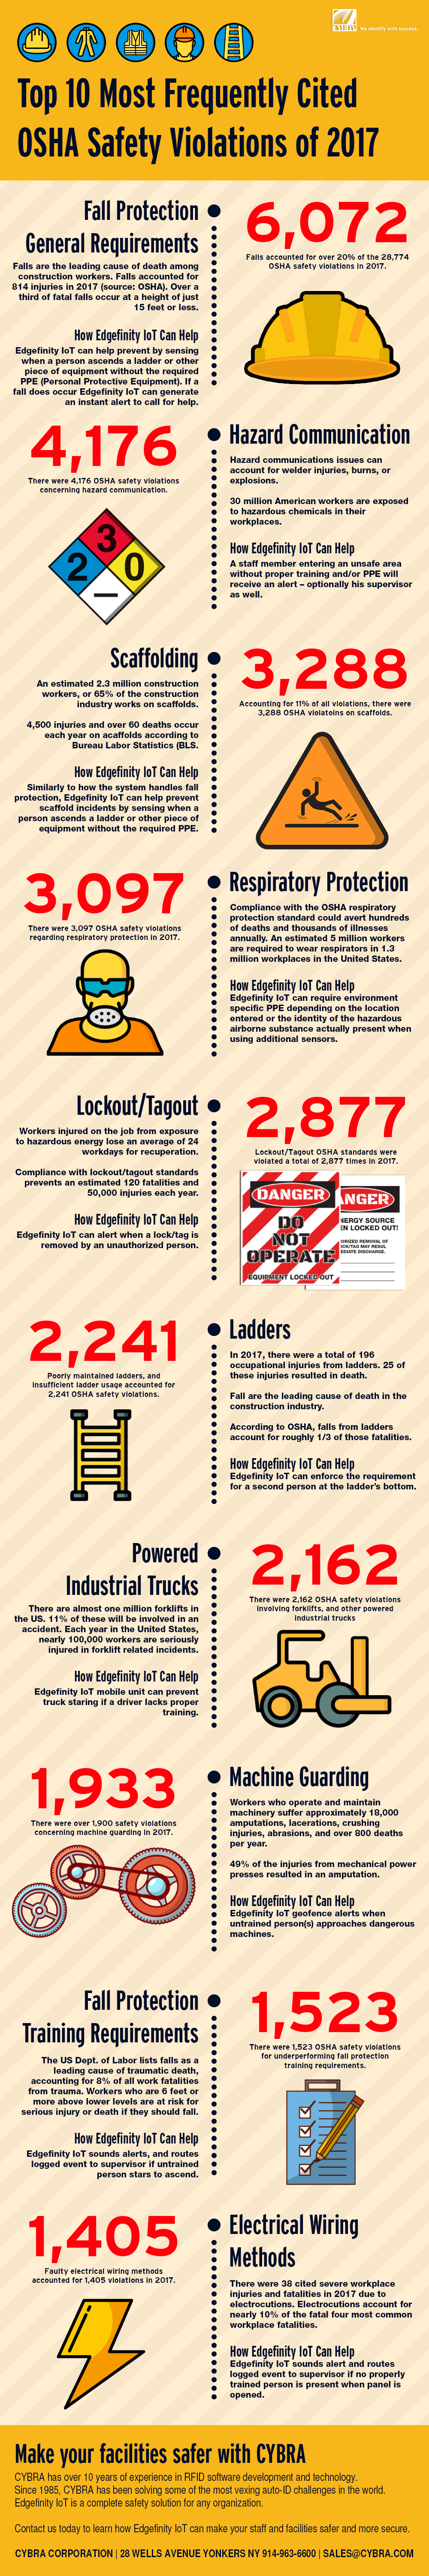 OSHA Safety Violations Infographic